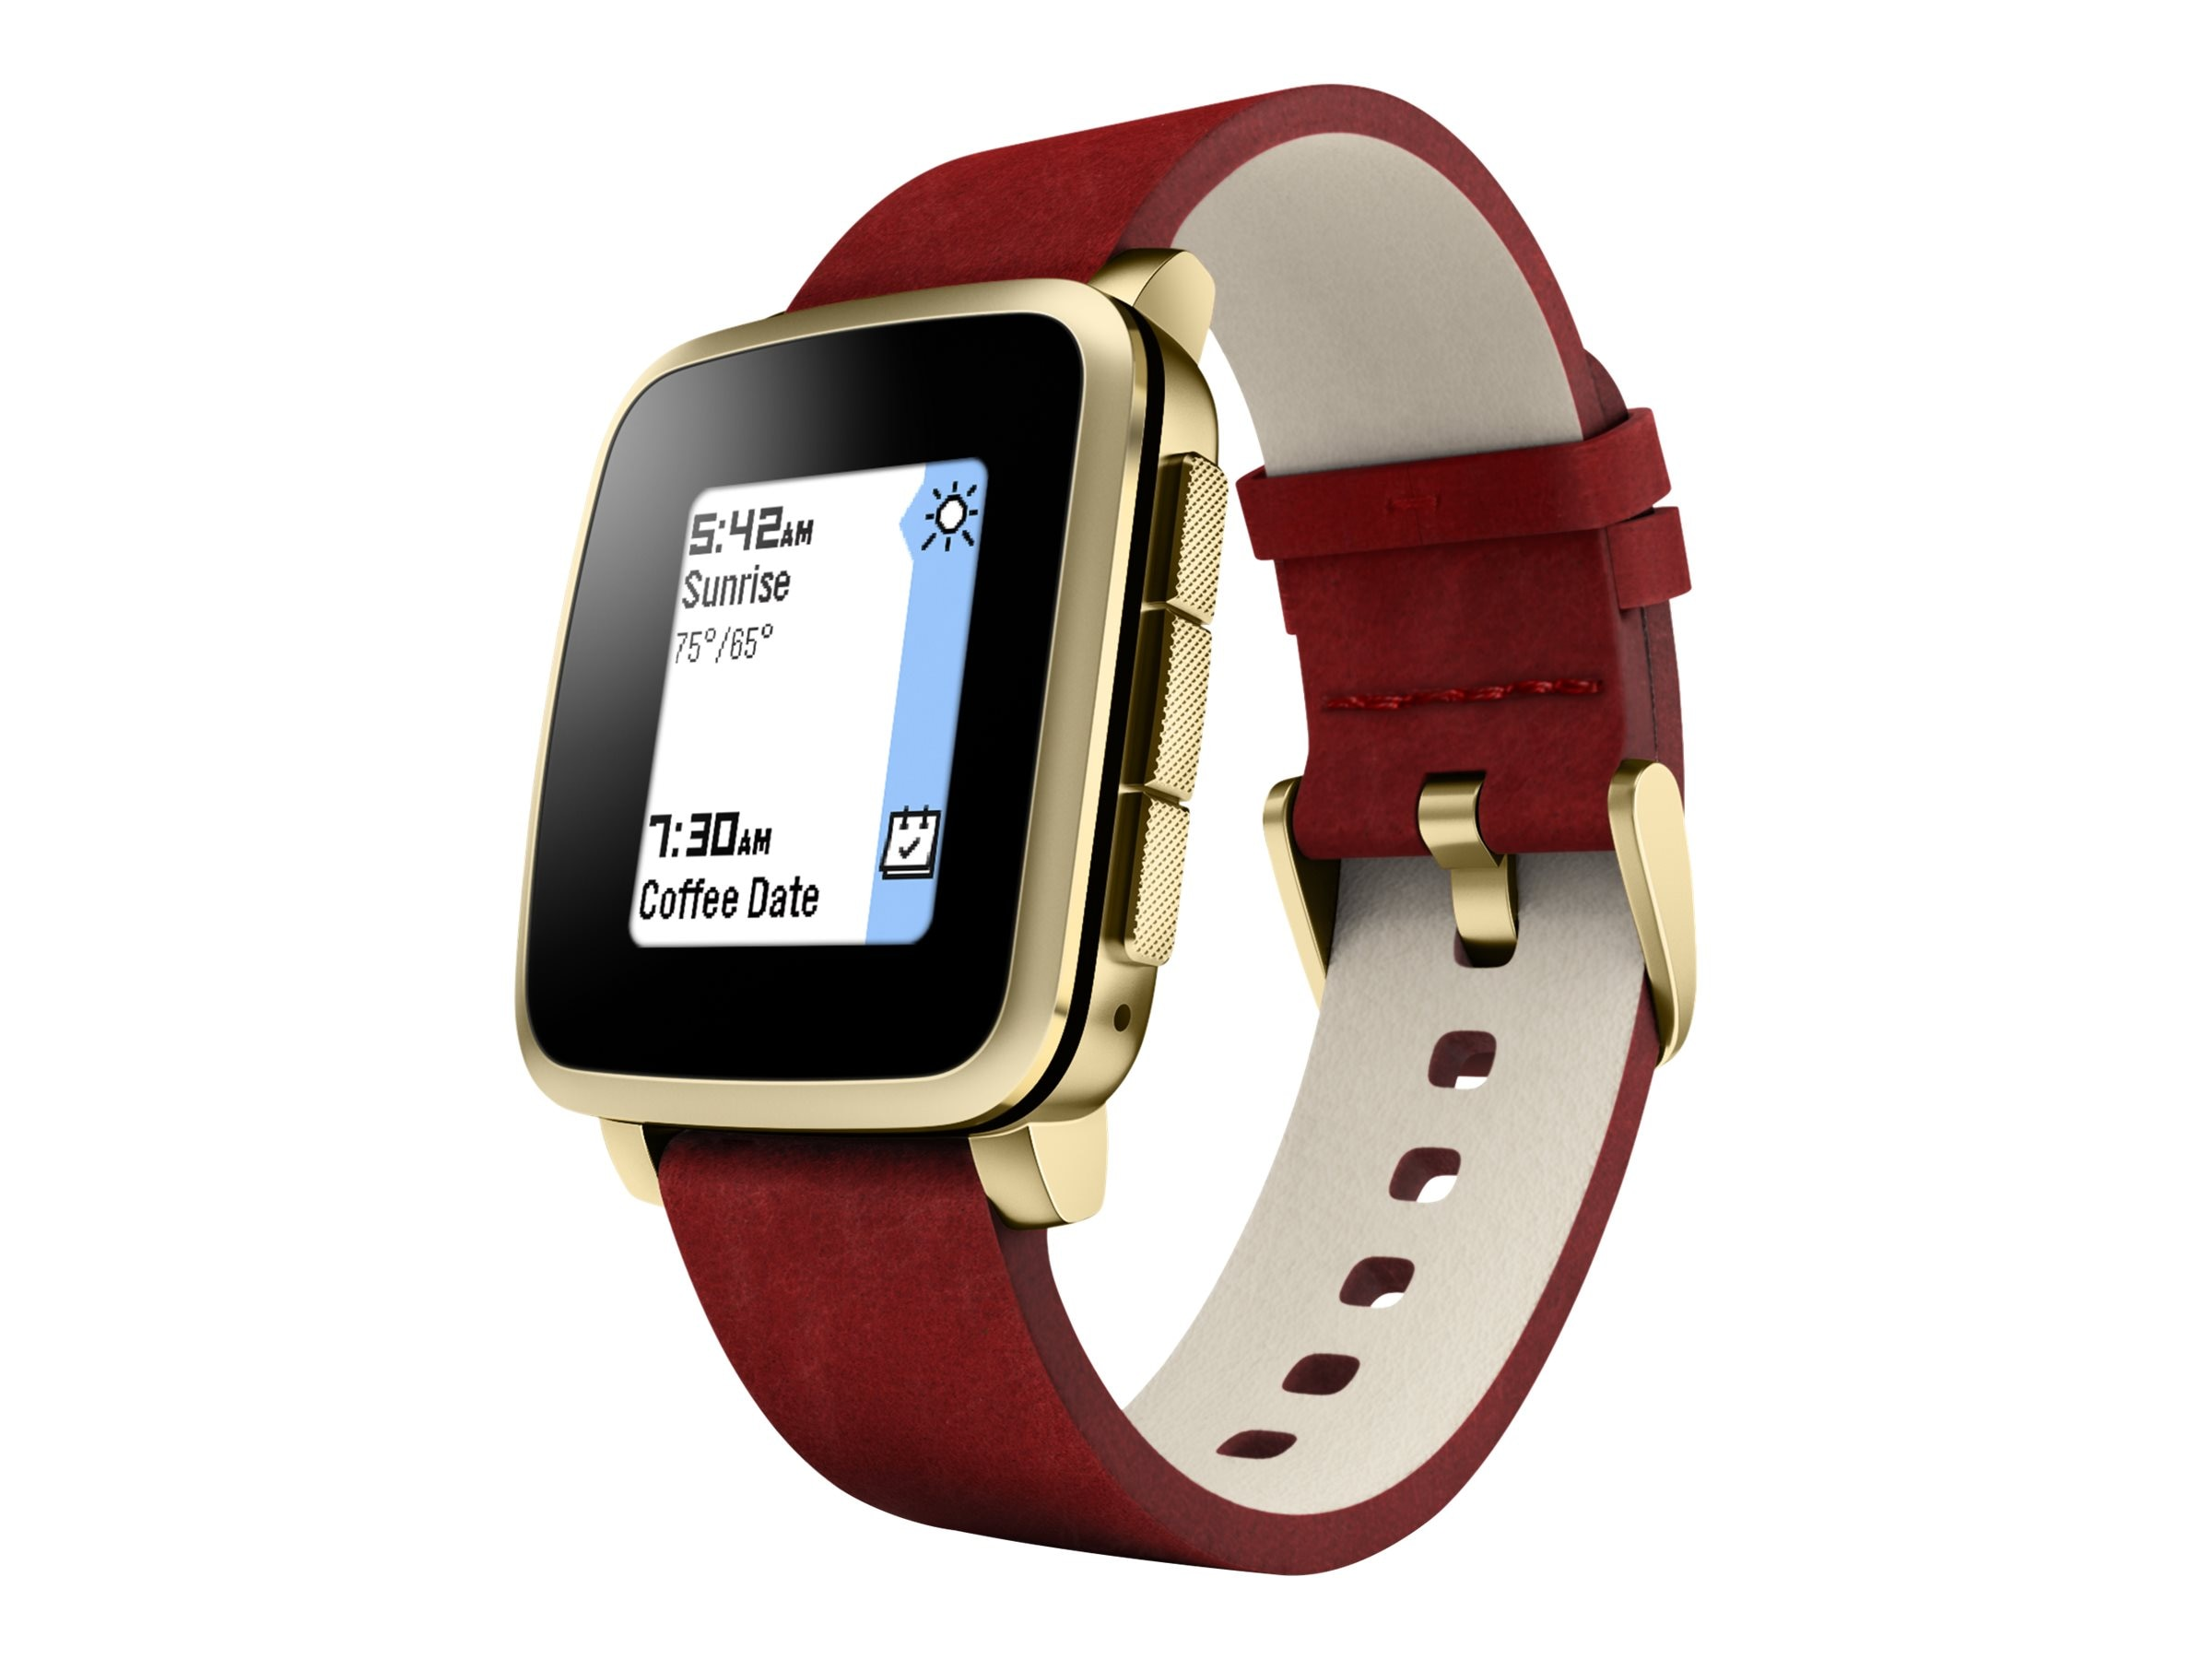 Pebble Time Steel Smartwatch, Gold with Metal Band